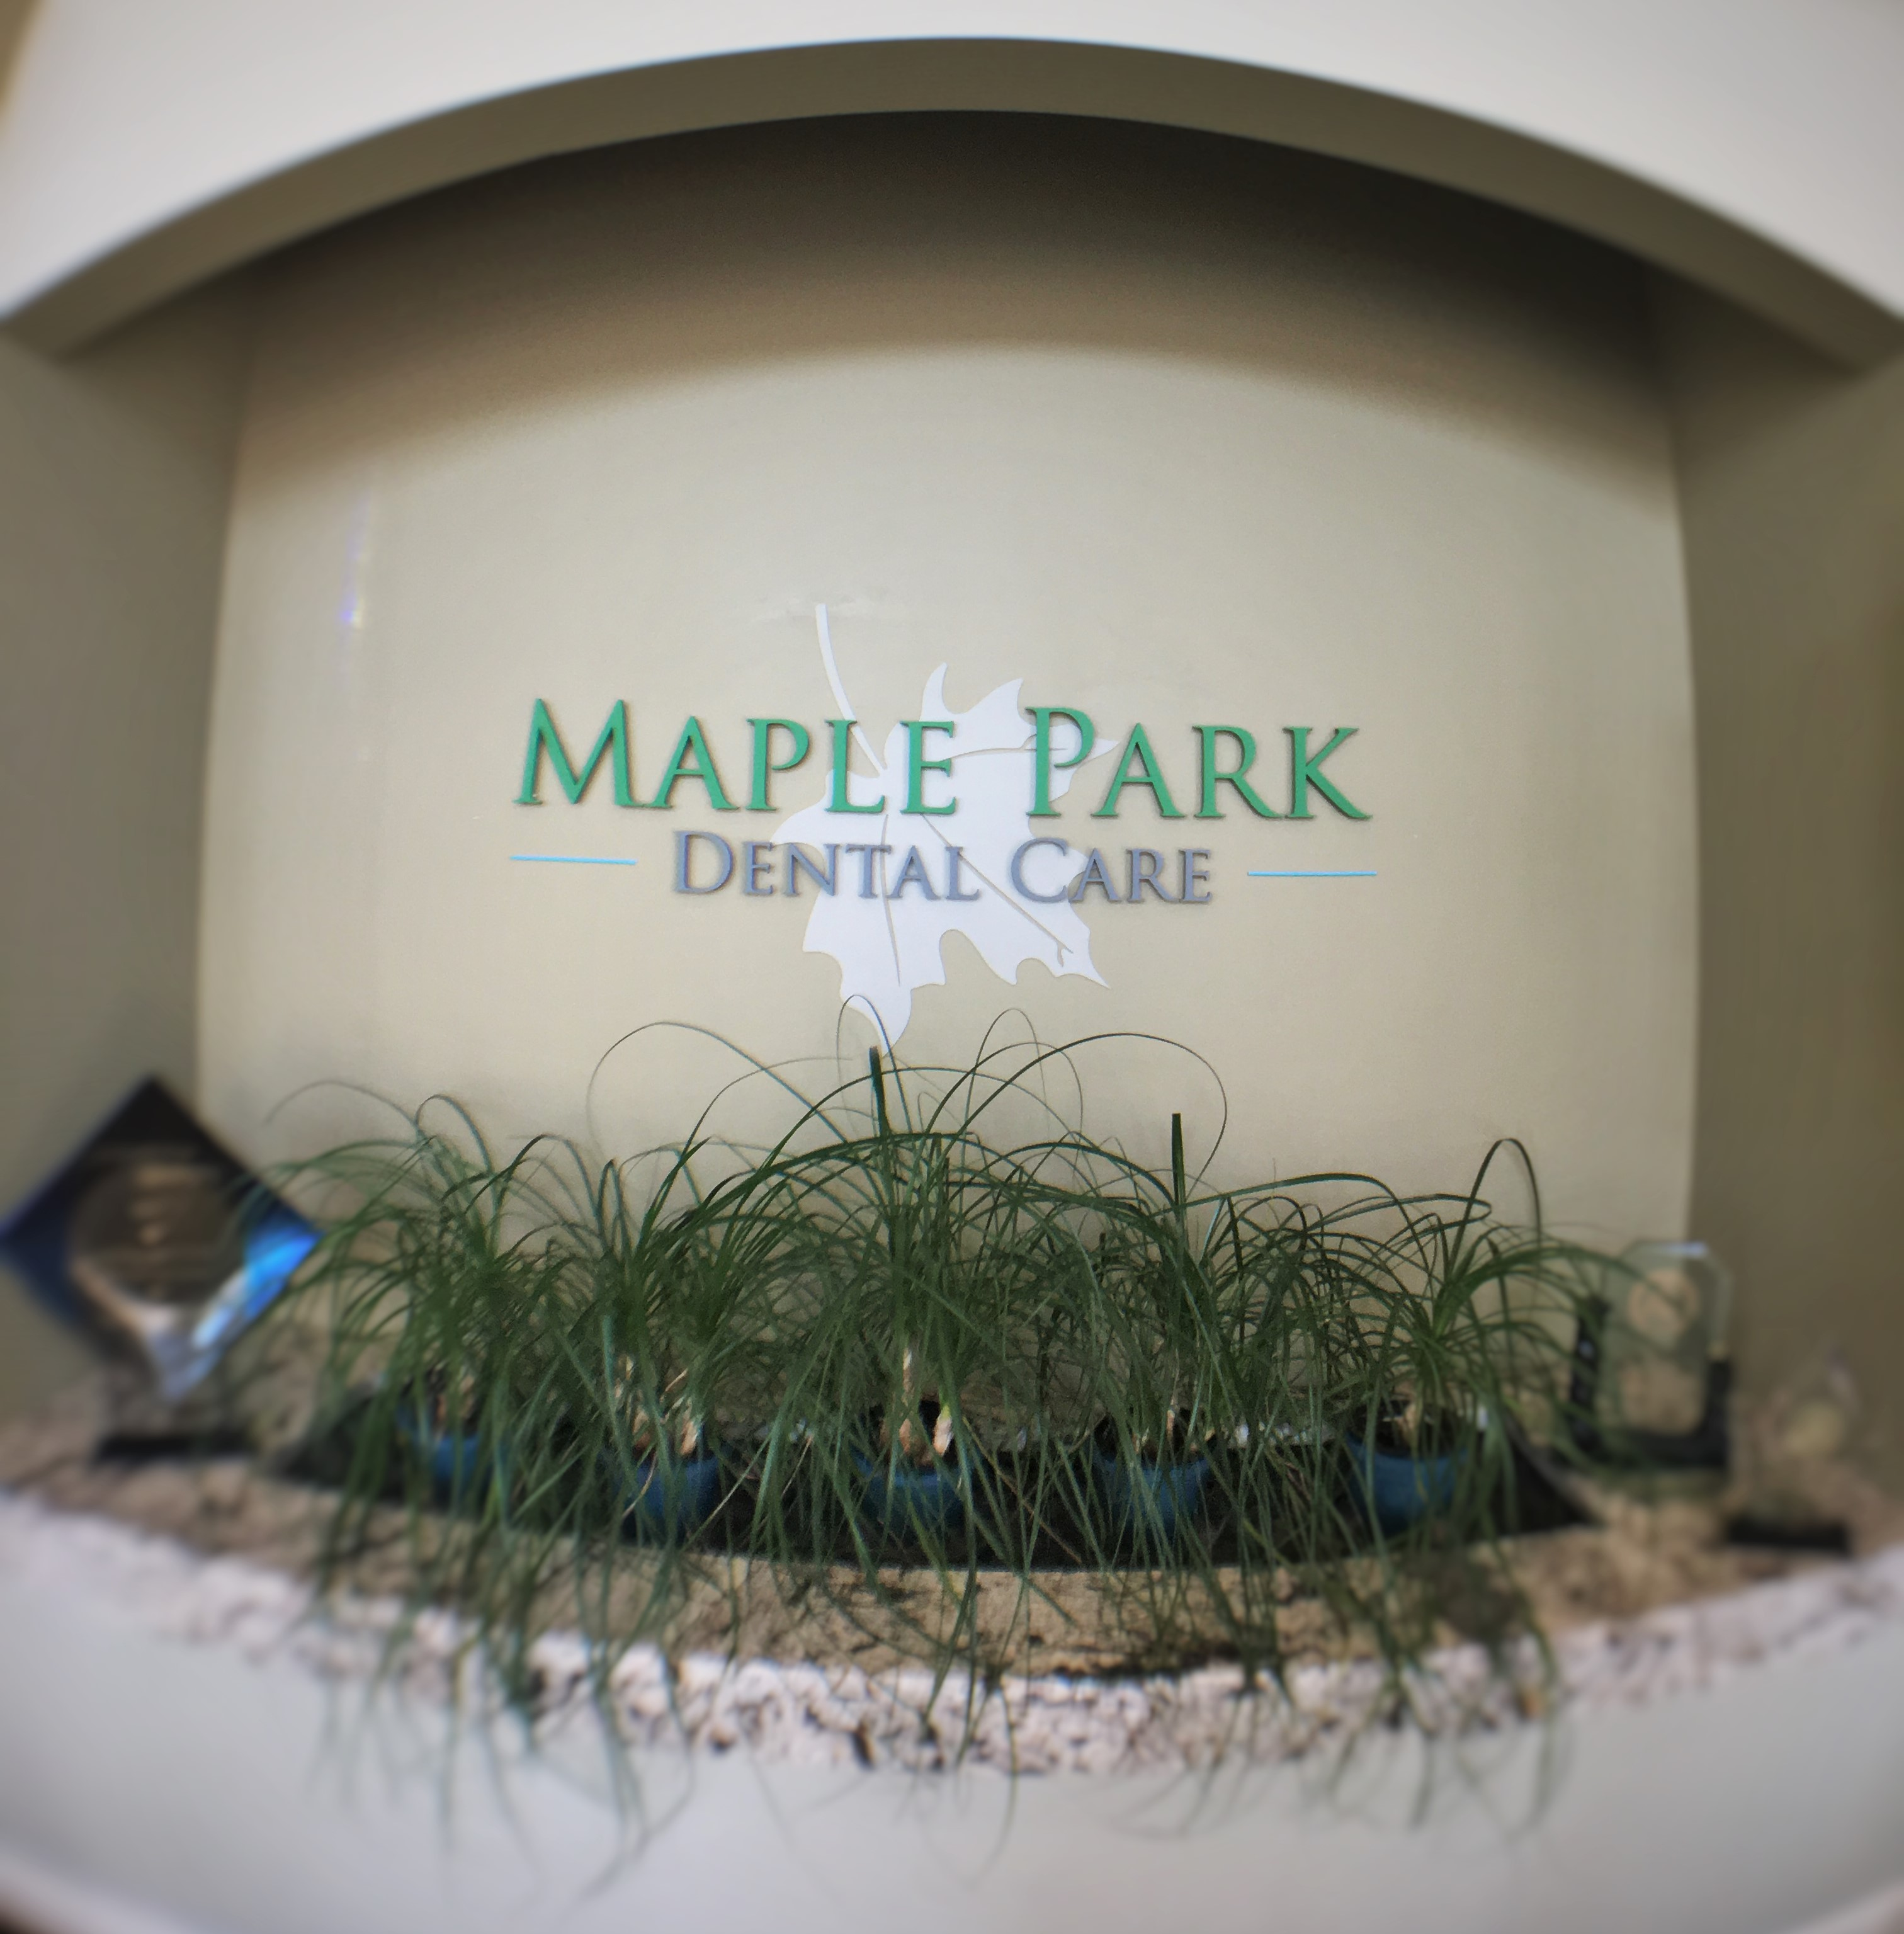 Maple Park Dental Care of Naperville image 6